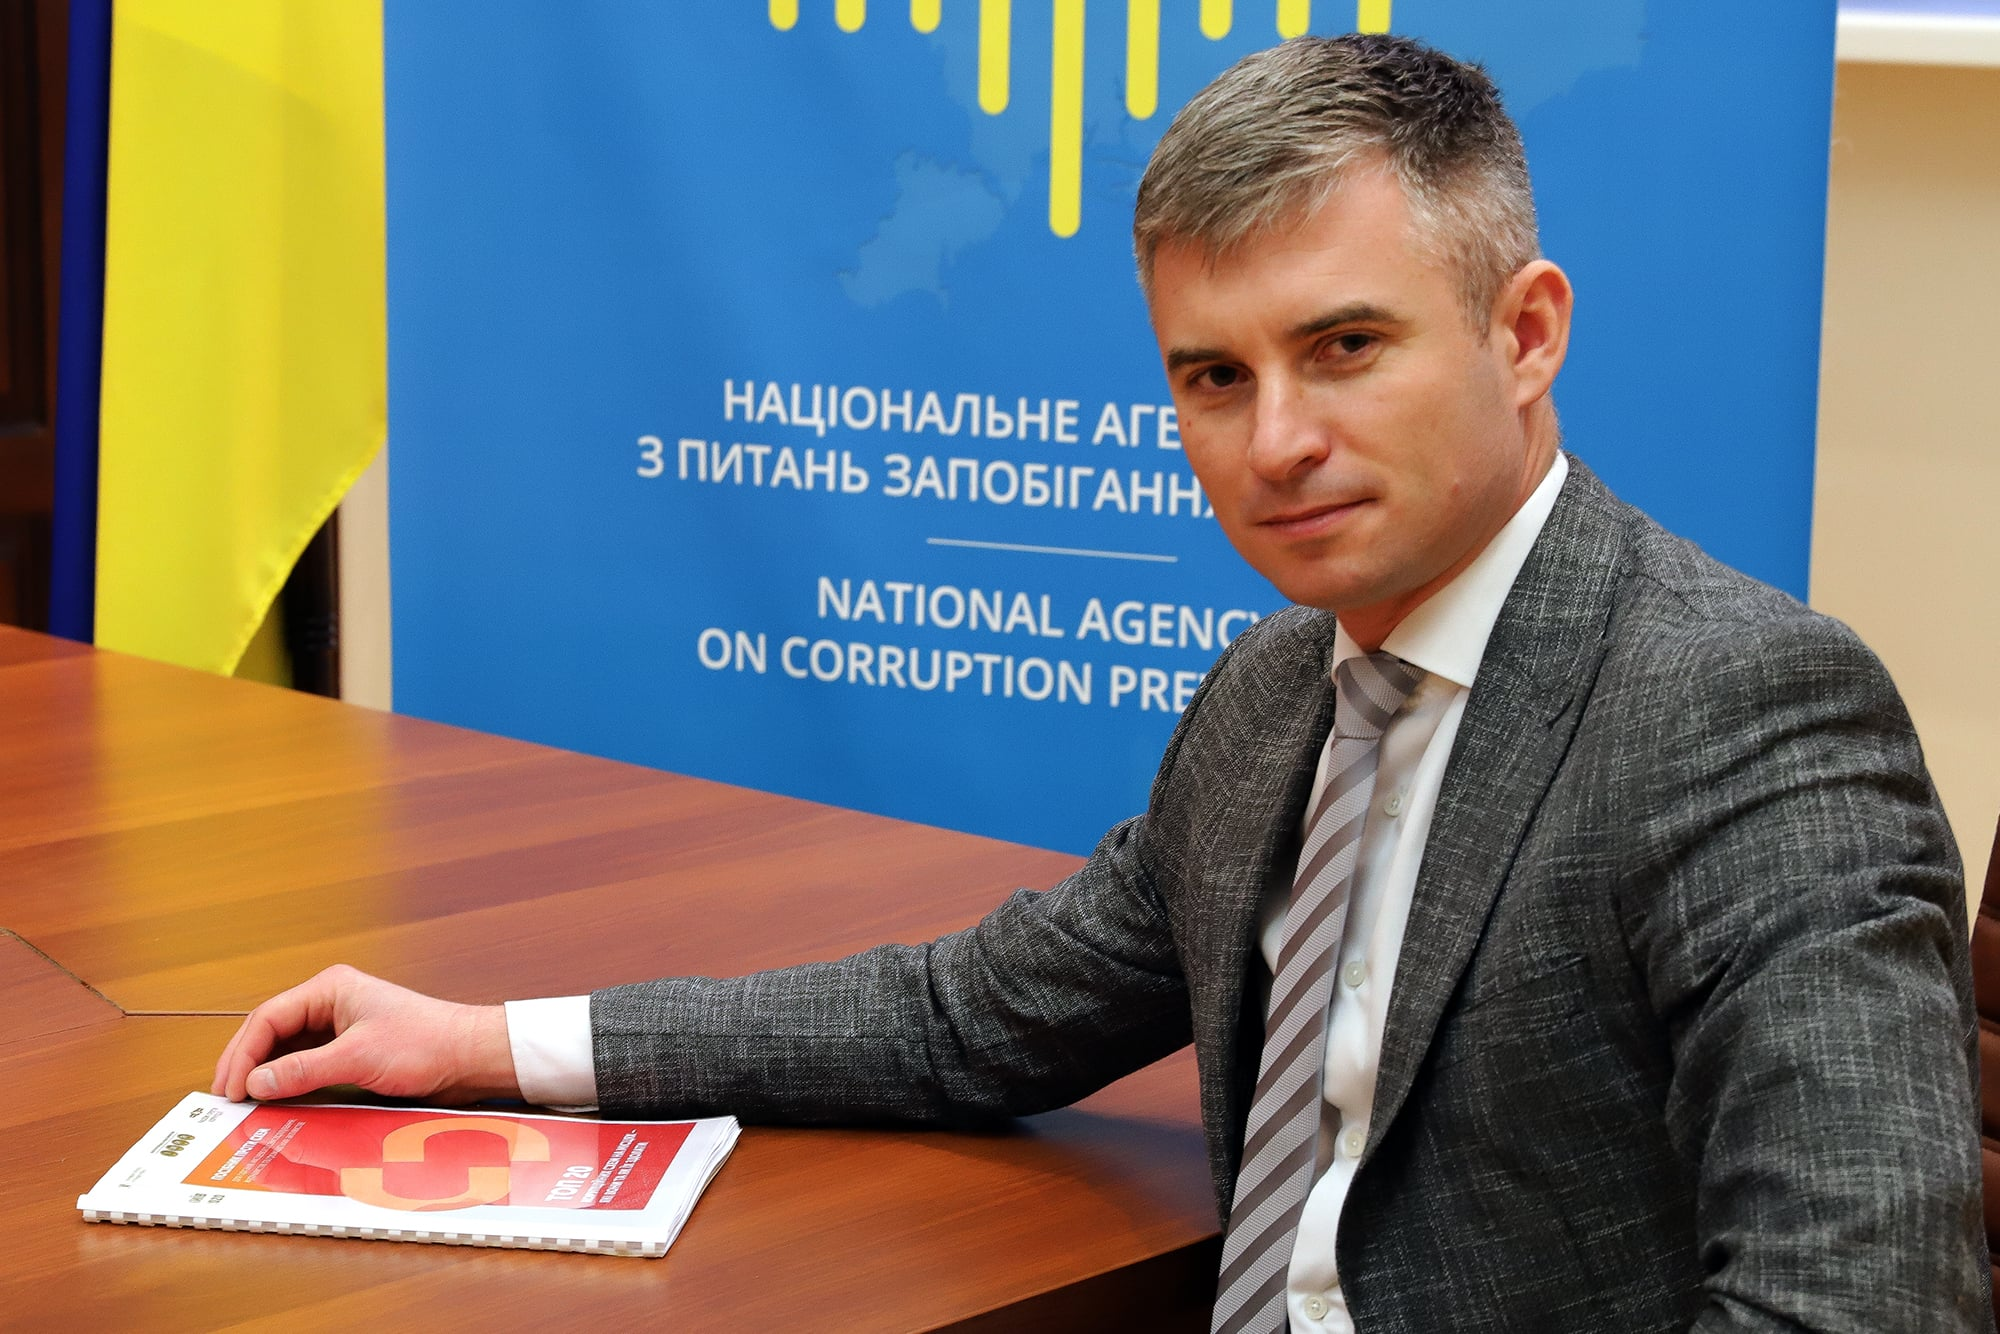 Oleksandr Novikov, chairman of the National Agency for Prevention of Corruption of Ukraine with the Top 20 Local Corruption Schemes – How to Overcome Them handbook. © IWPR